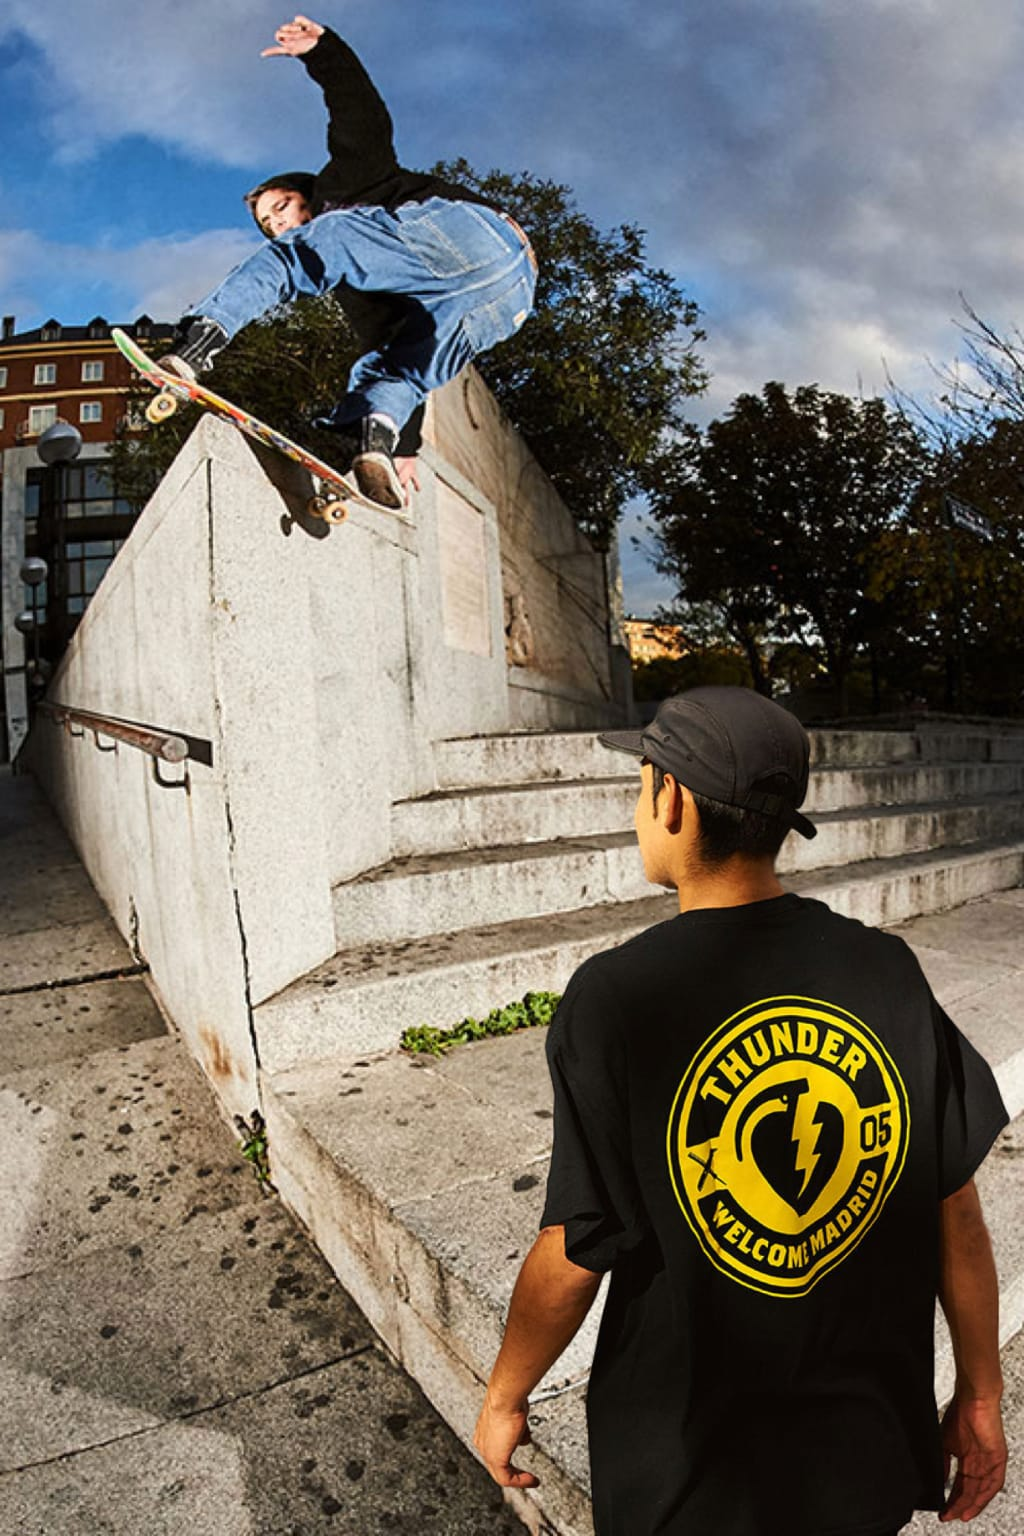 Thunder Trucks x Welcome Madrid